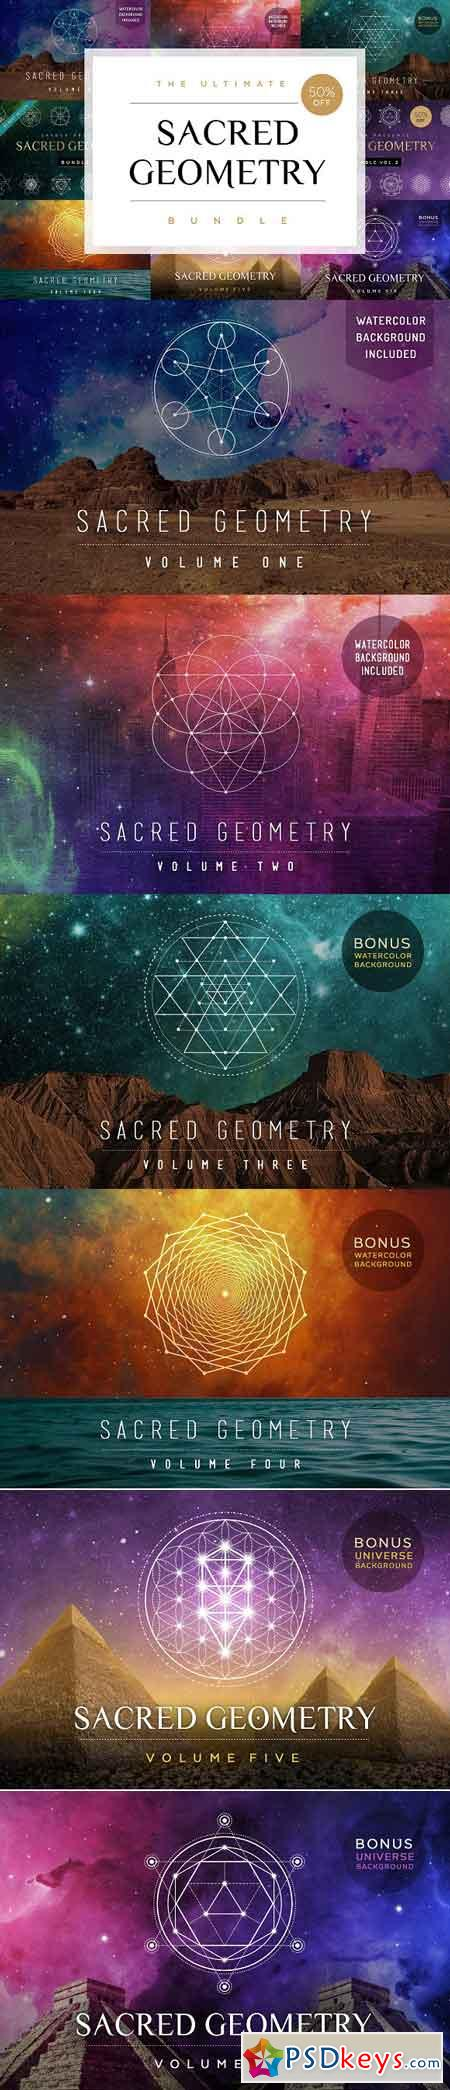 Ultimate Sacred Geometry Bundle 1855071